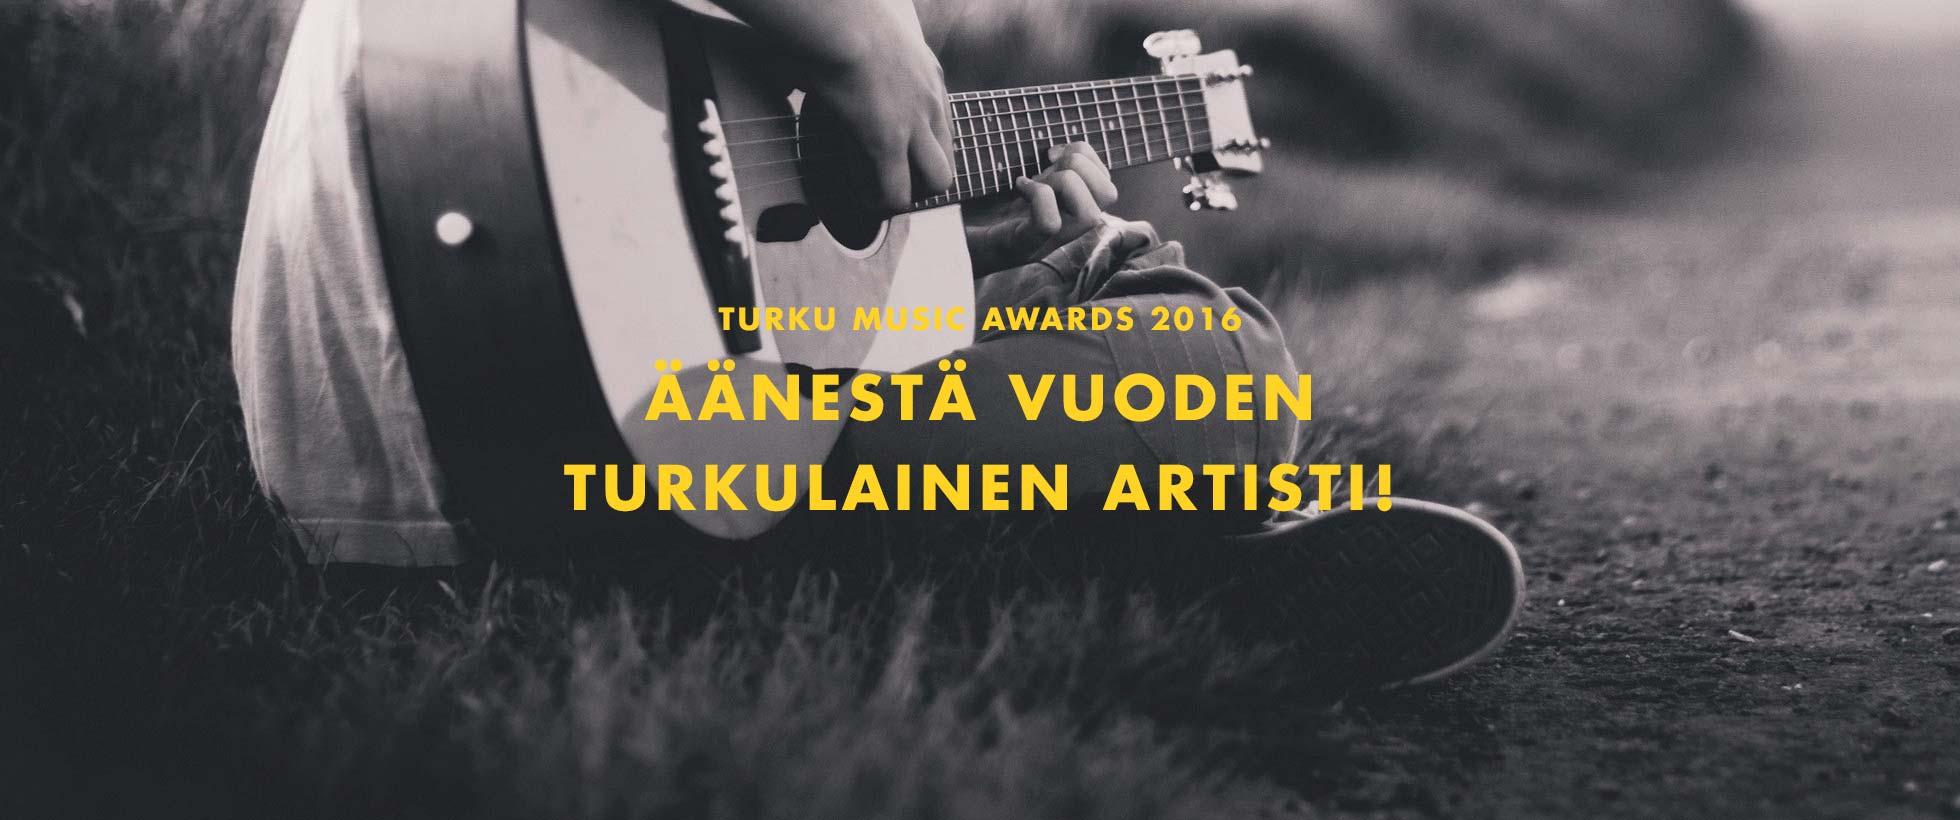 Turku Music Awards